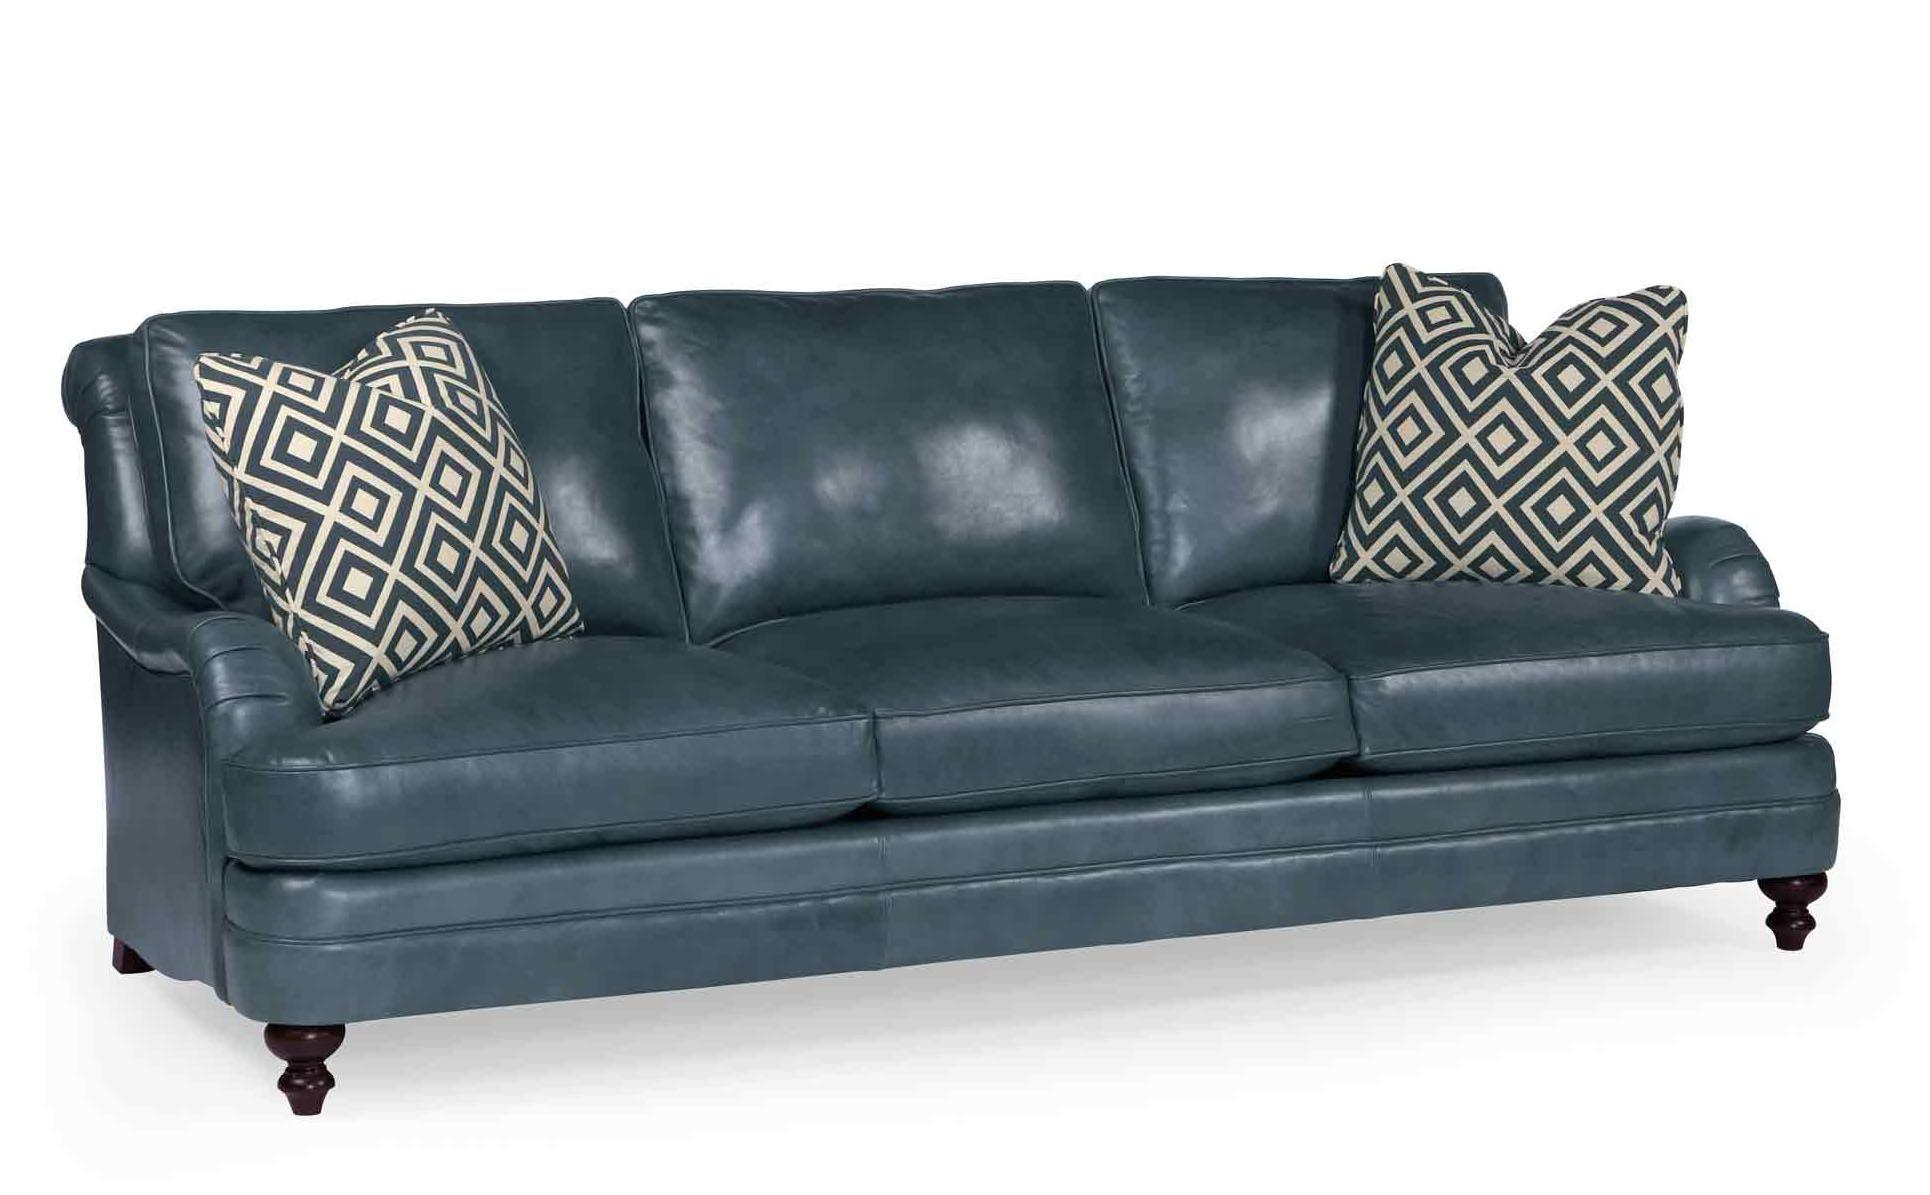 Blue leather sectional couch images frompo 1 for Blue leather sofa